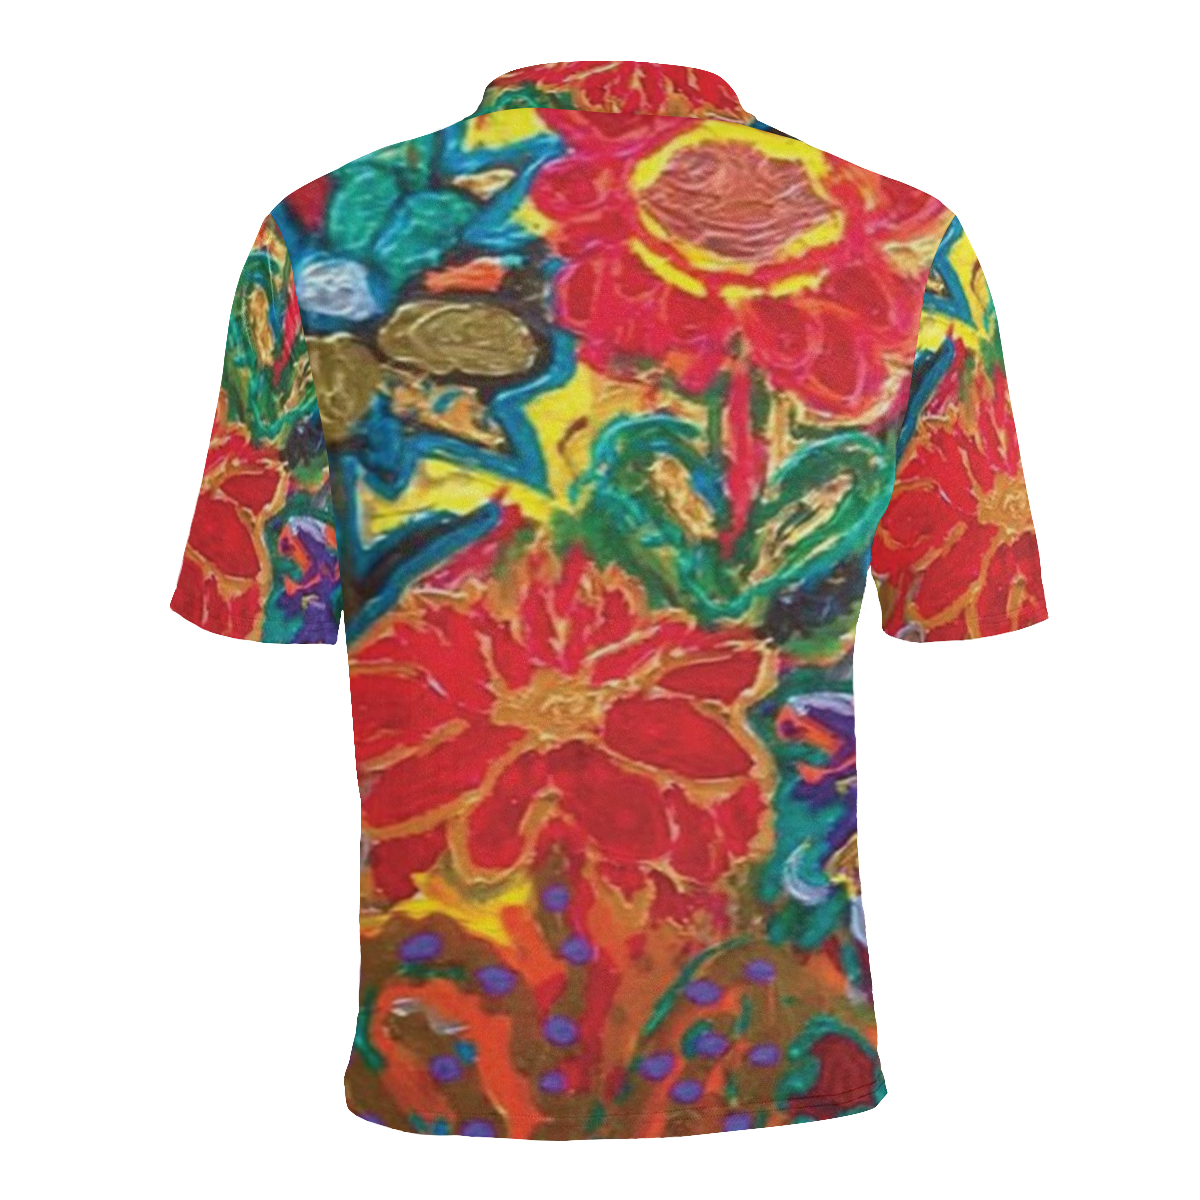 2928002-HABEFECO-7 Men's All Over Print Polo Shirt (Model T55)